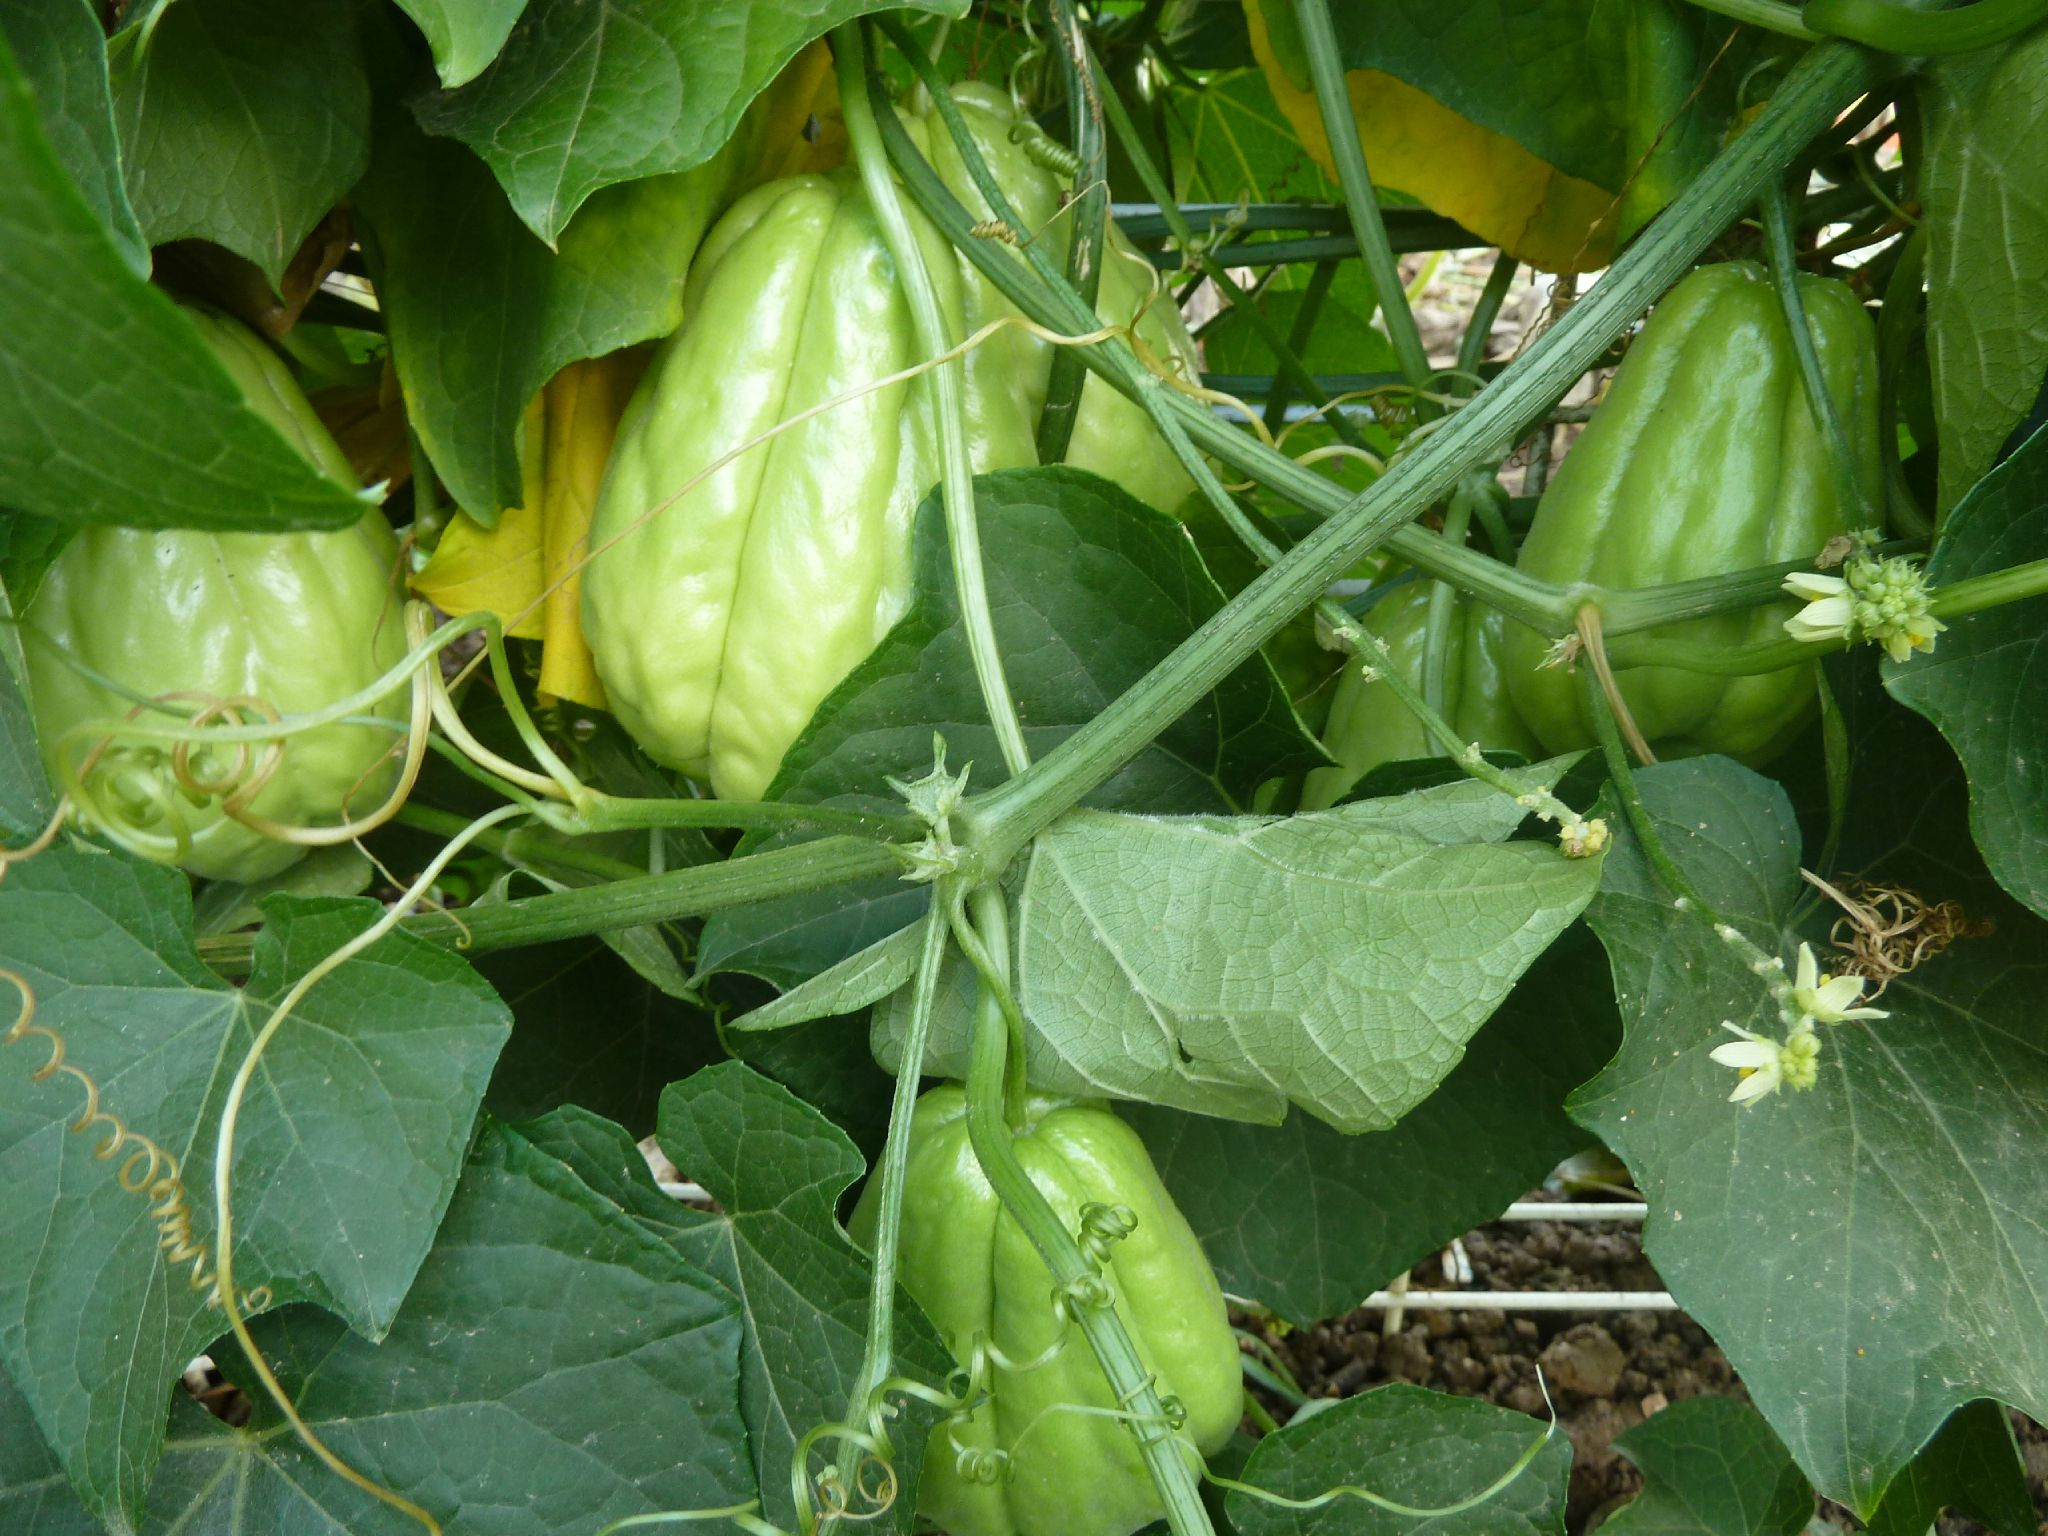 chayottes - christophines - www.passionpotager.canalblog.com